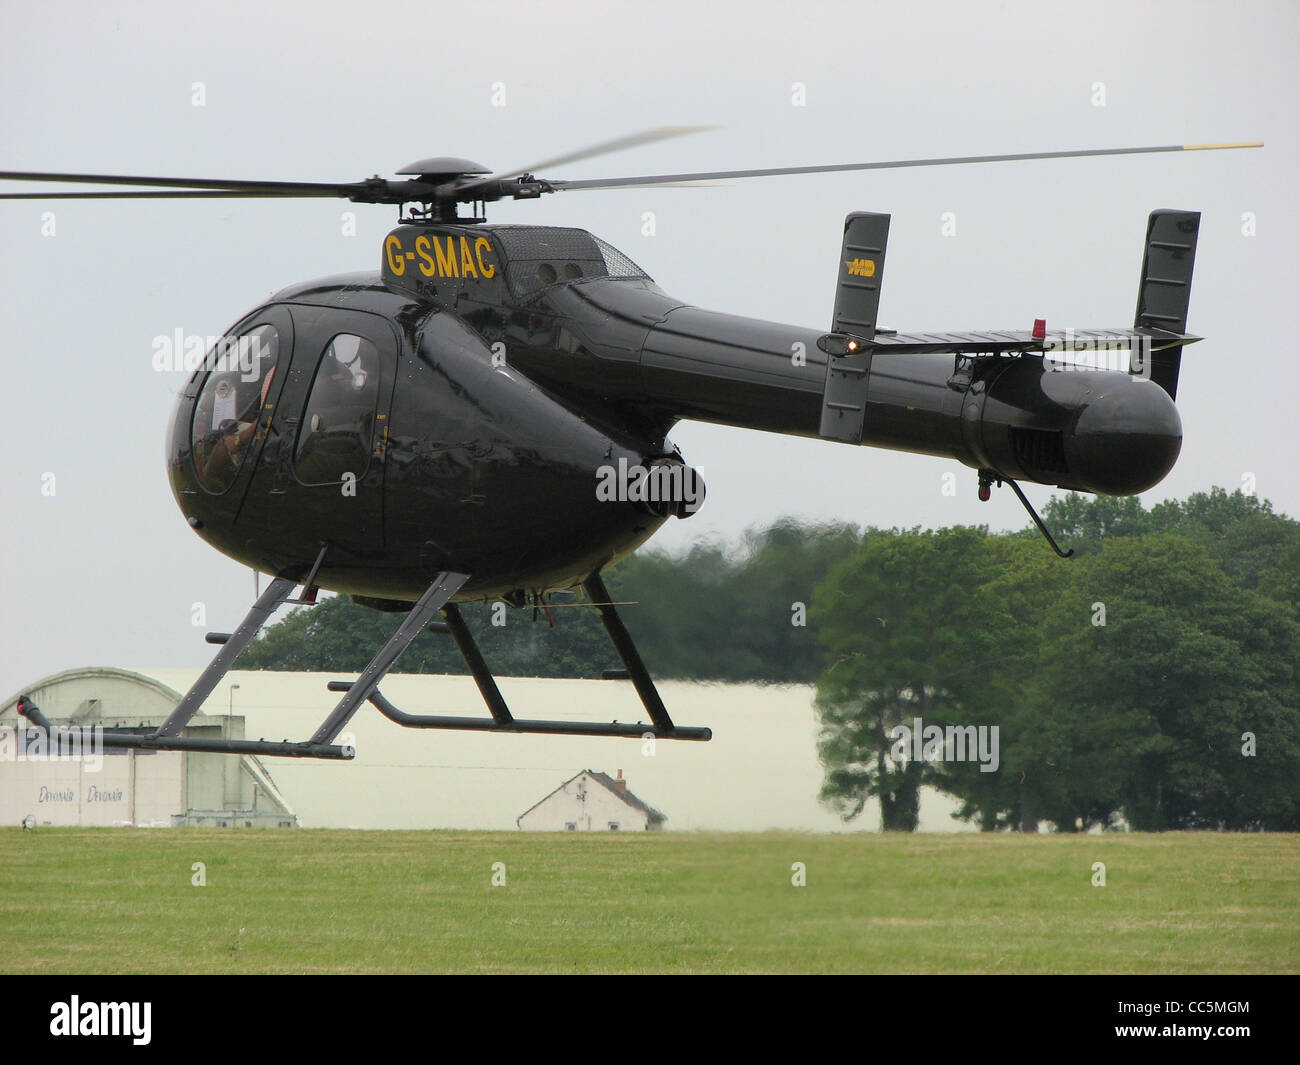 MD500N (G-SMAC, built 1992) at Kemble Airfield, Gloucestershire, England. - Stock Image